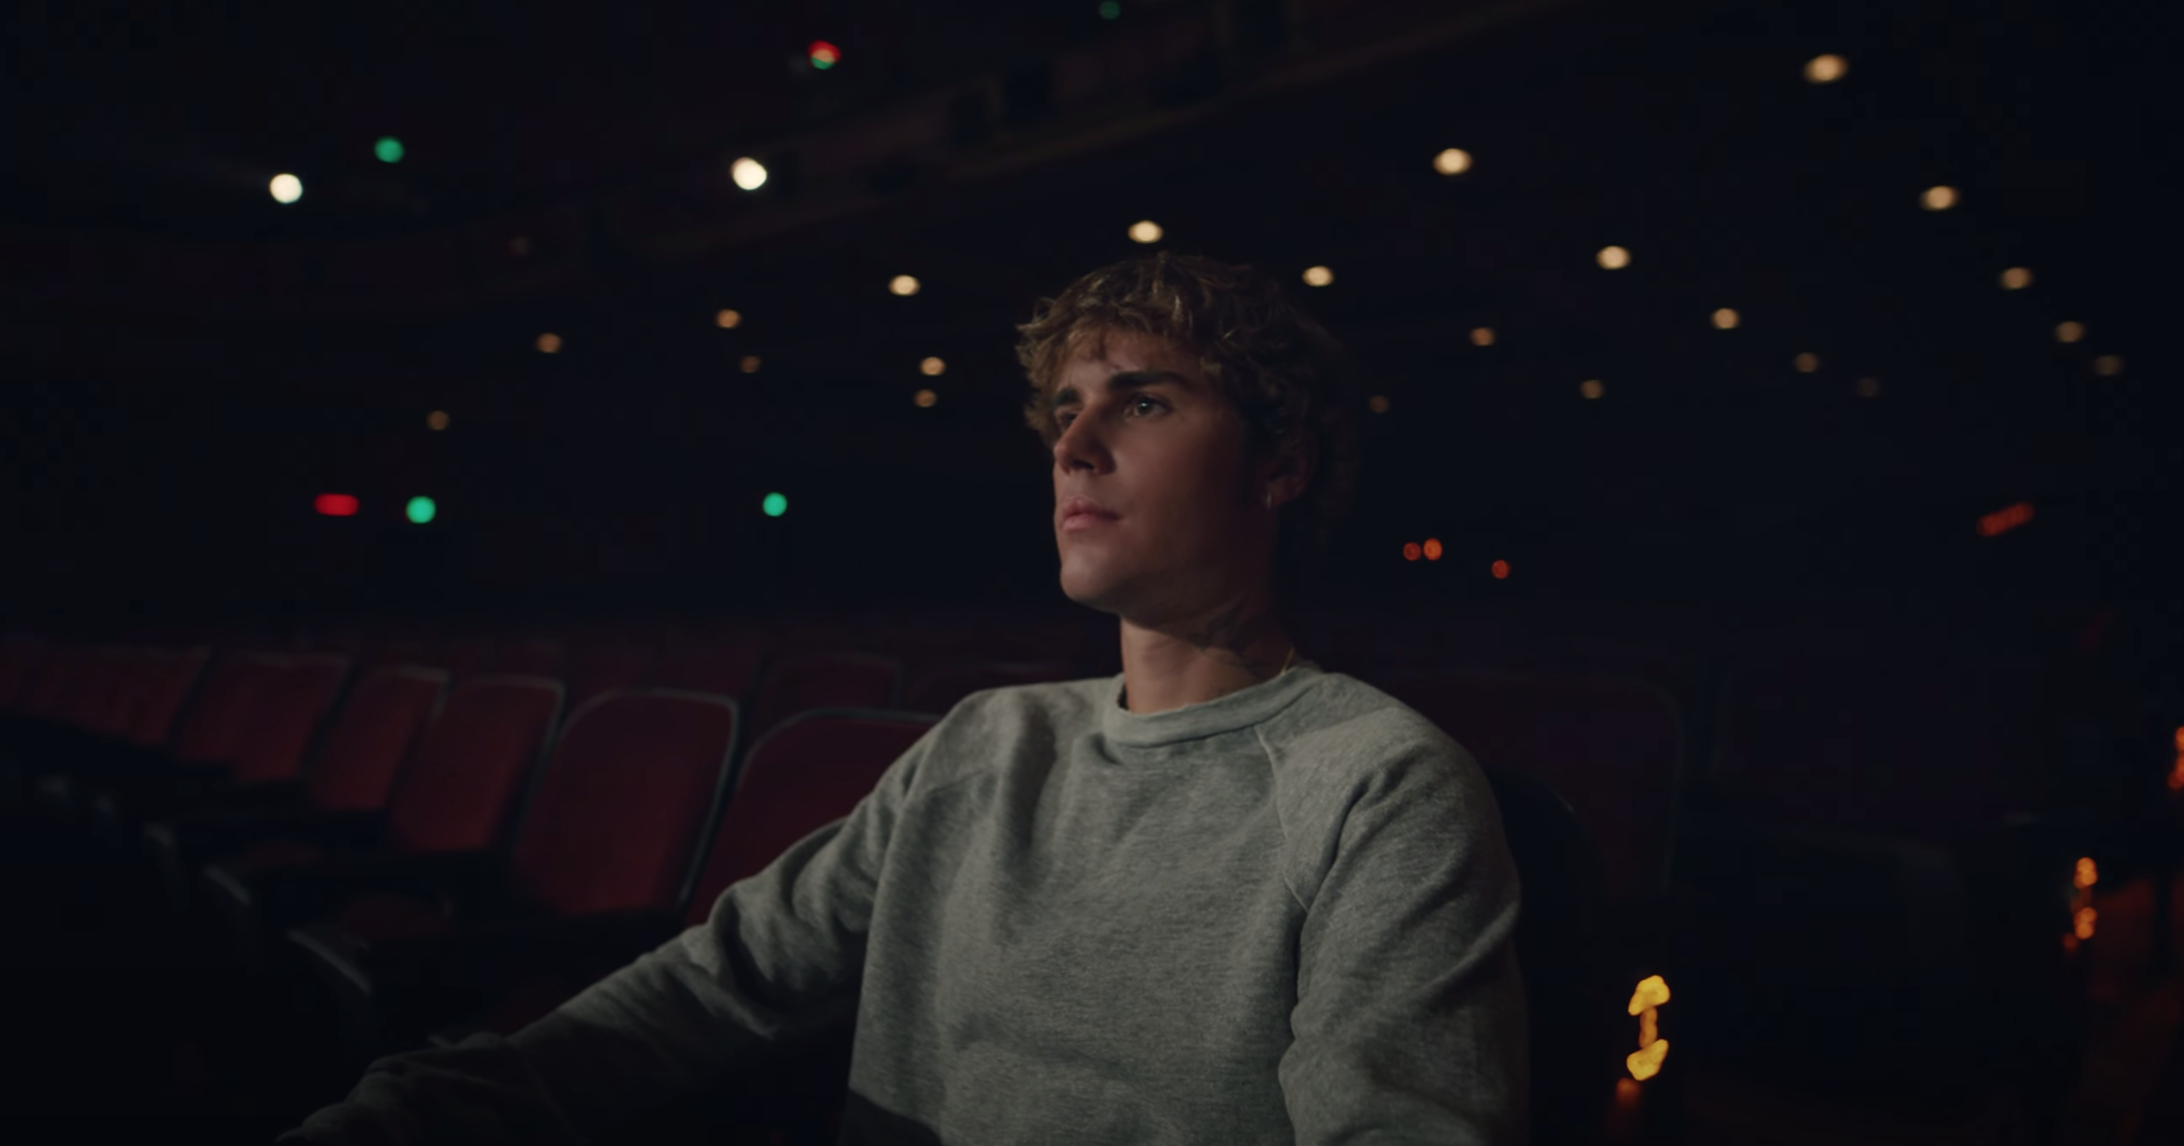 At the end of the music video, present-day Justin somberly watches young Justin on stage from the audience